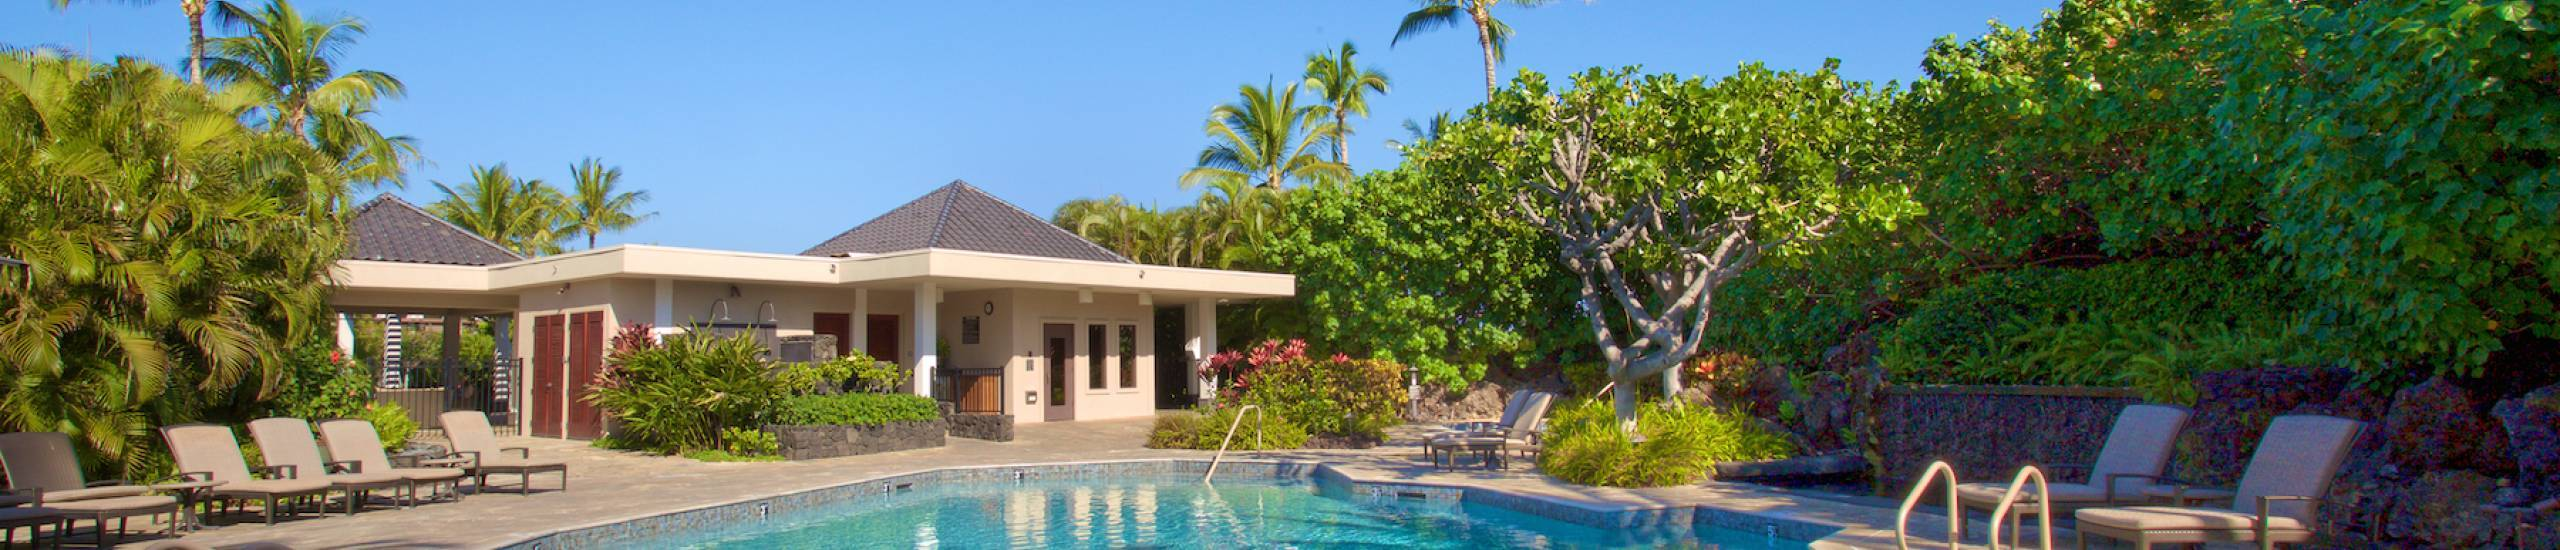 Tranquil community pool at Mauna Lani Point